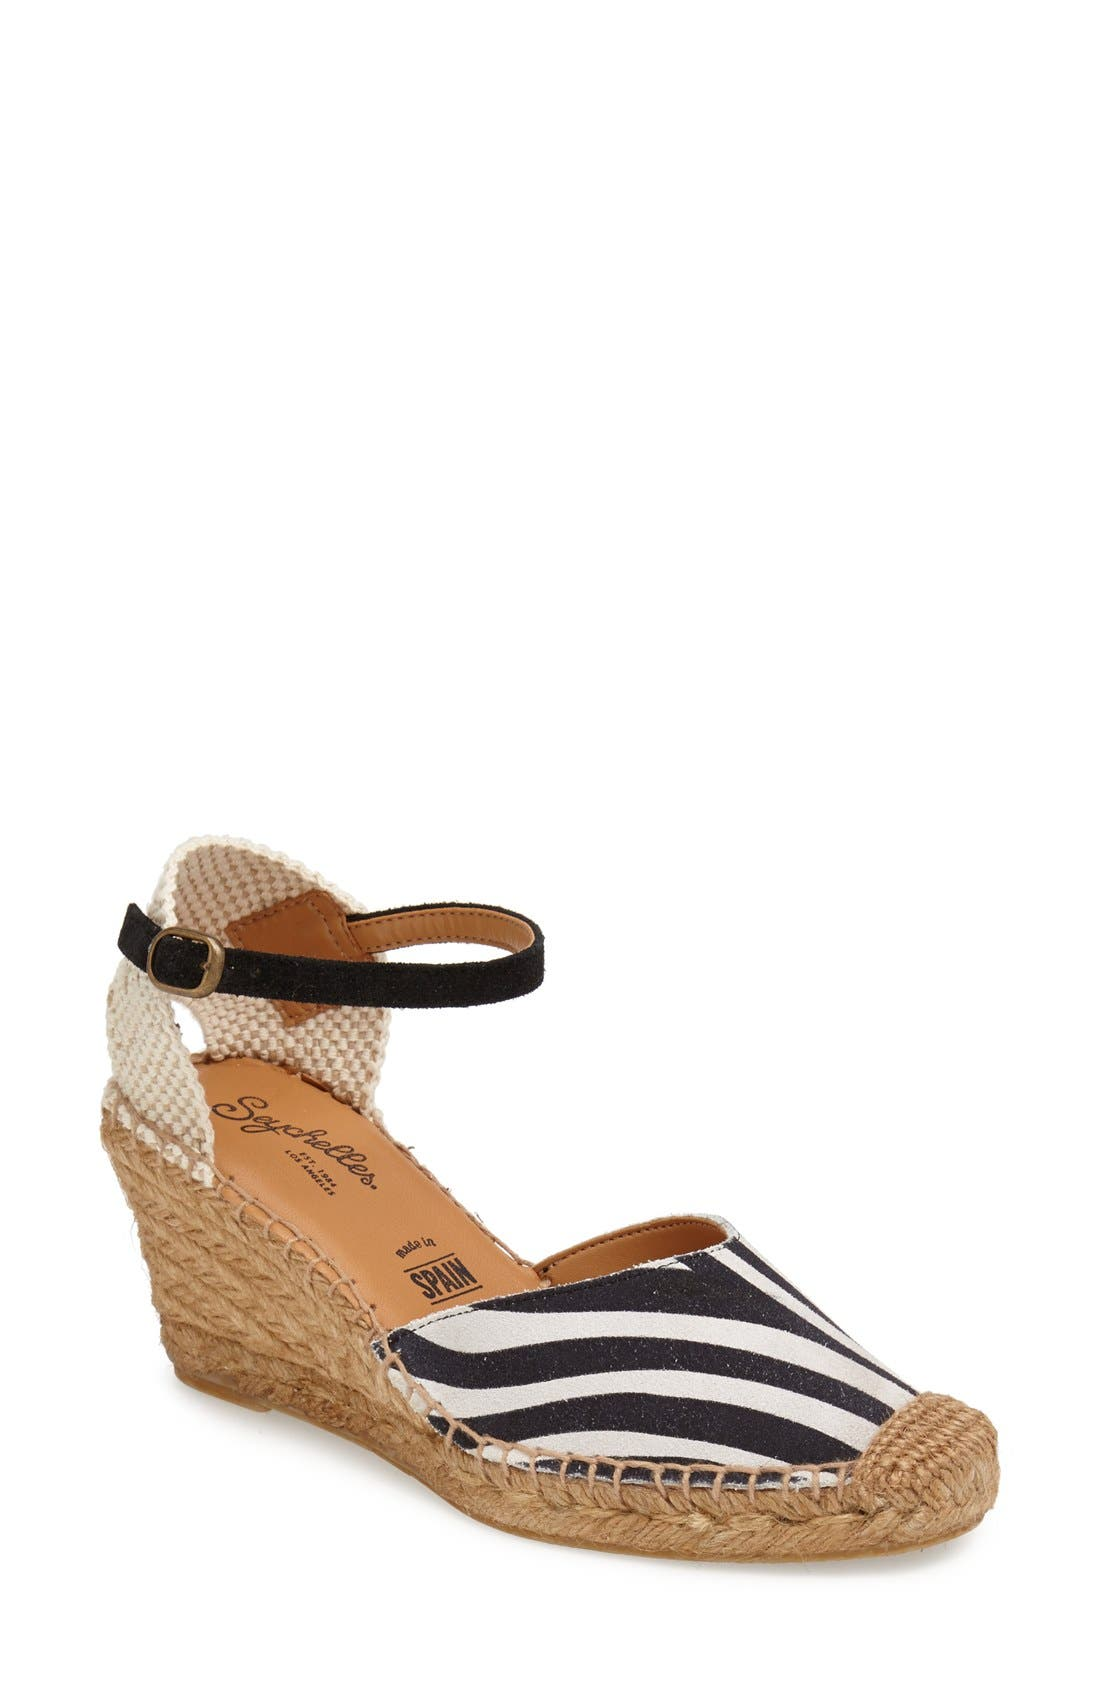 Alternate Image 1 Selected - Seychelles 'Truth Be Told' Espadrille Wedge Sandal (Women)